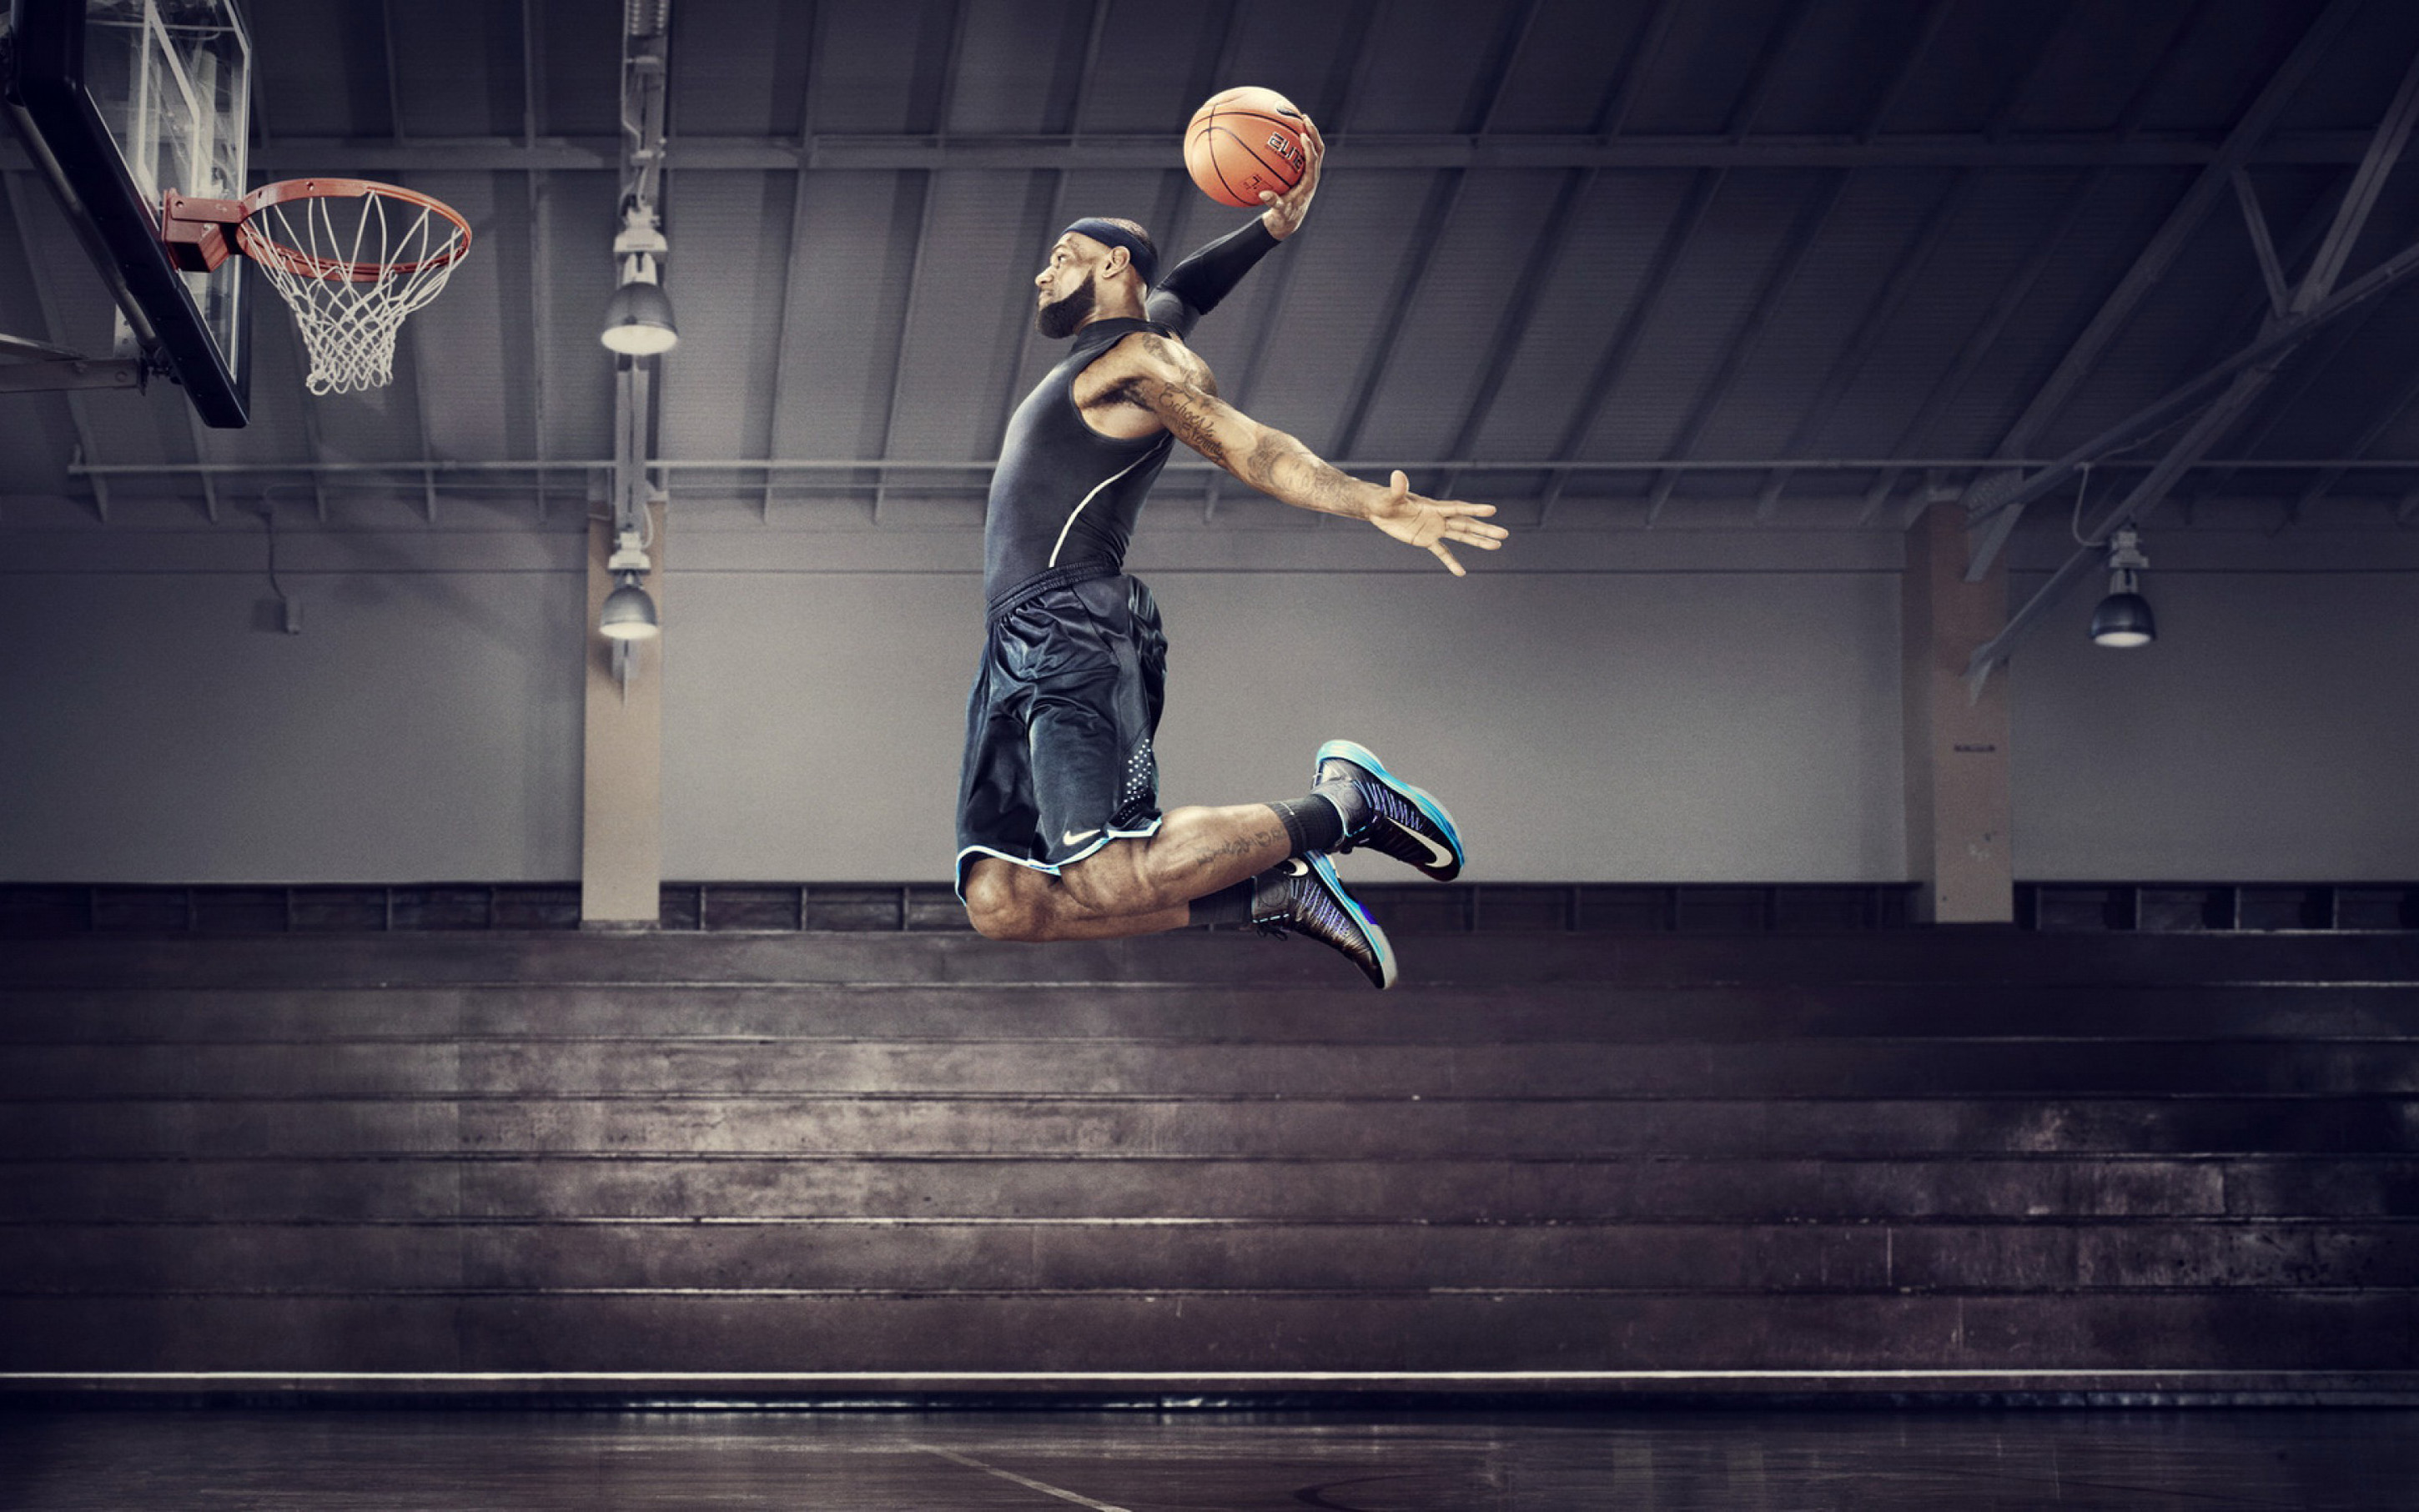 lebron james wallpaper also known as lebron raymone james is an ...